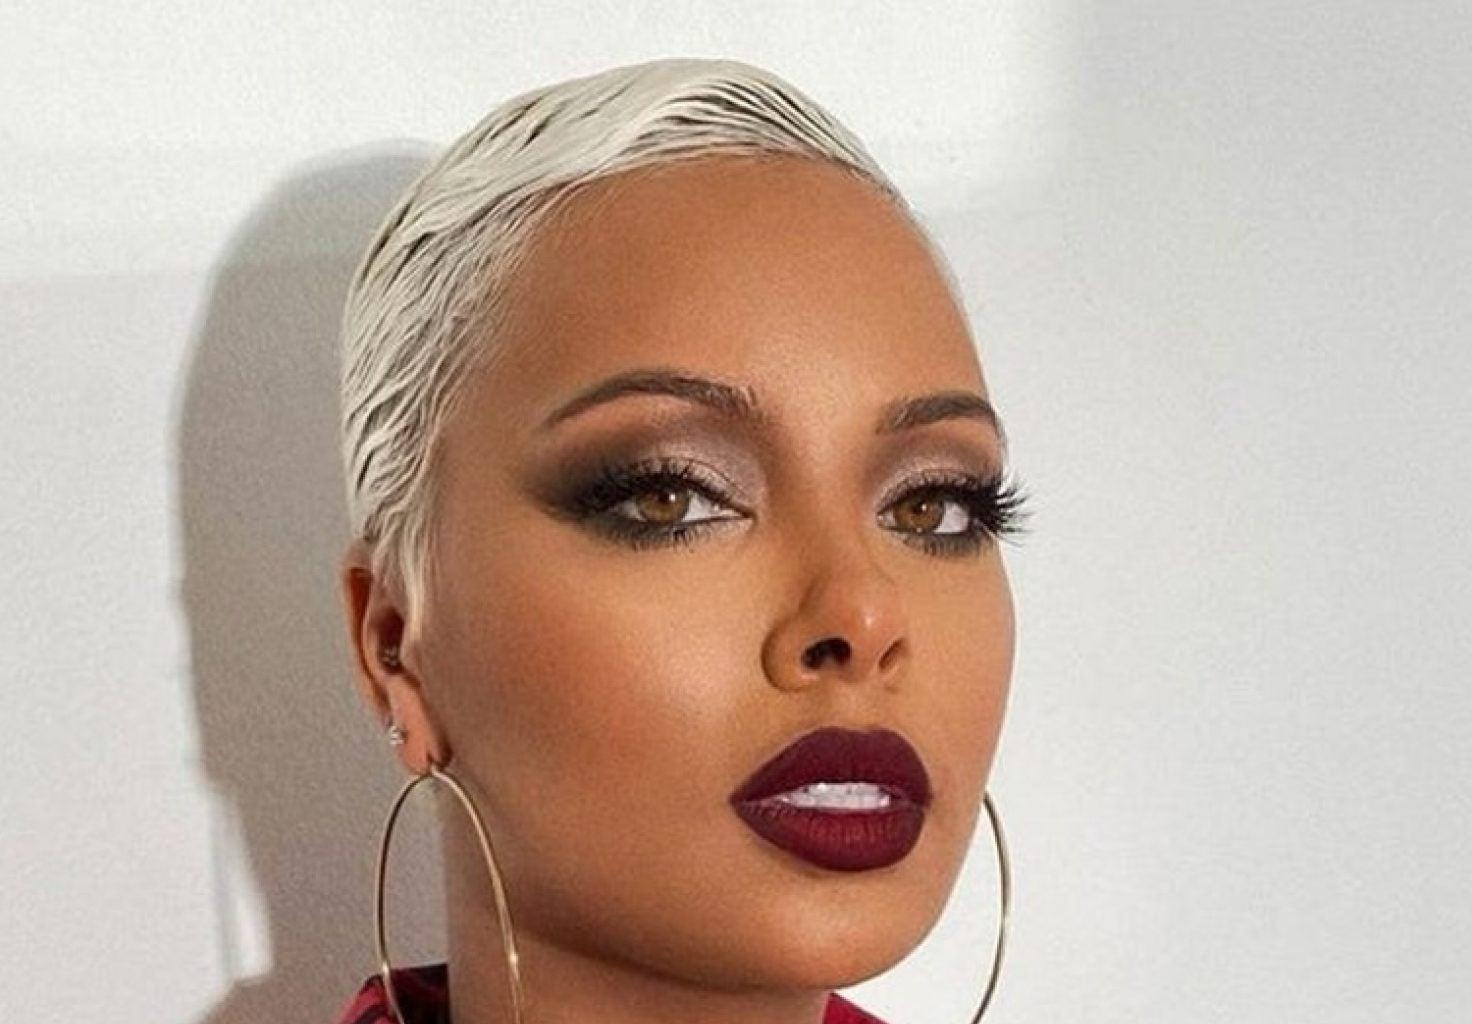 Eva Marcille Addresses Slavery, Legality And More Crucial Issues